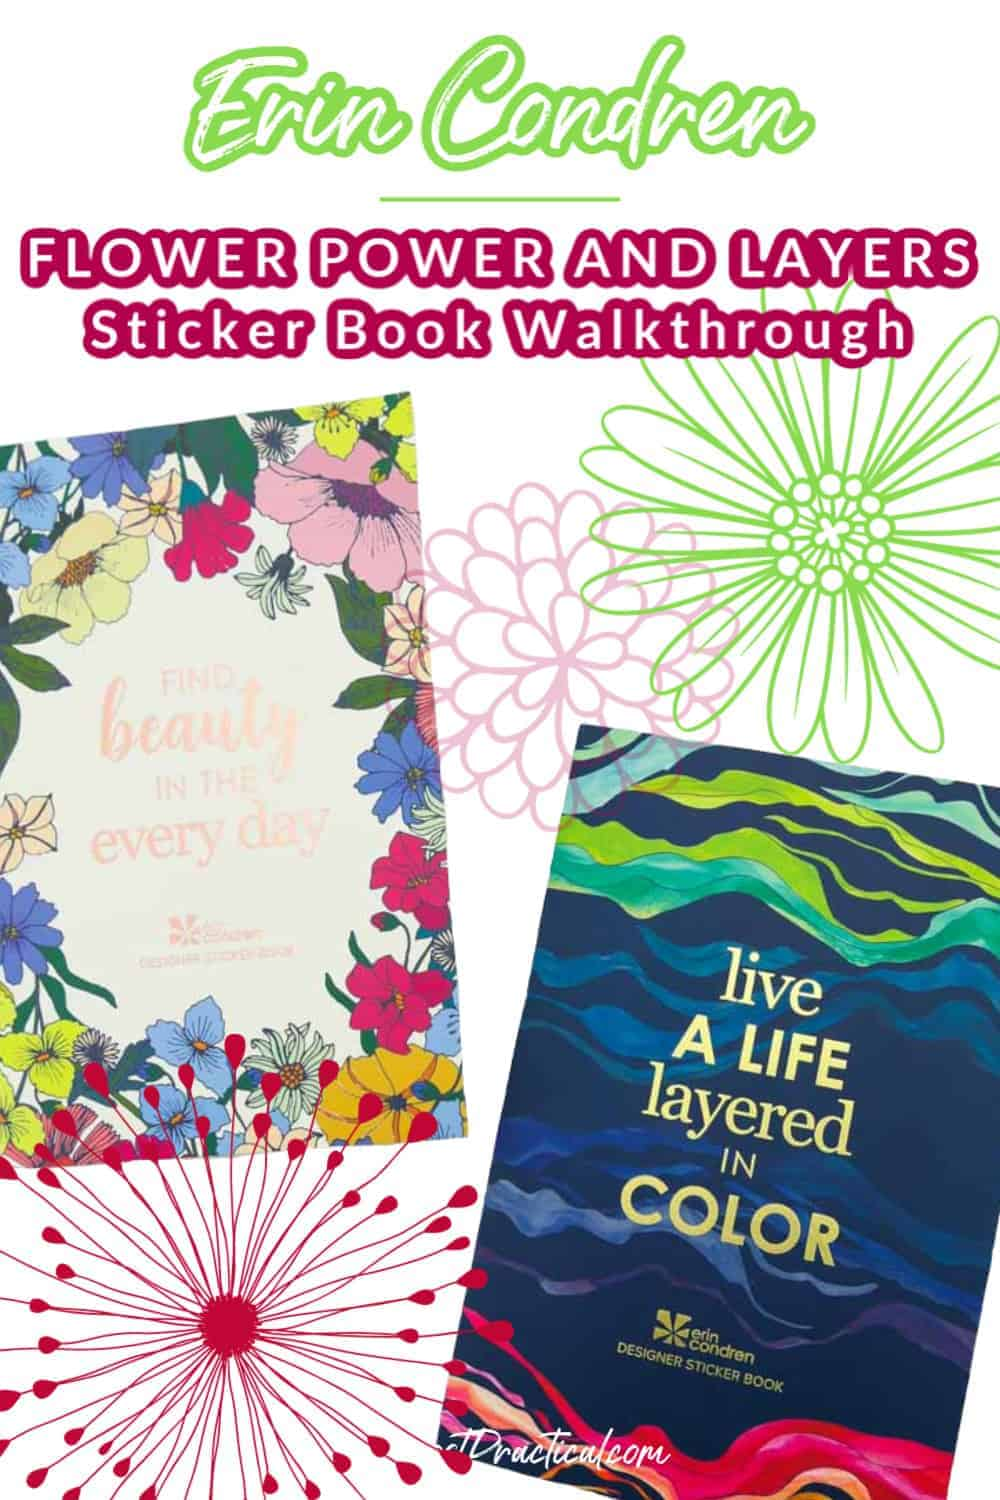 Erin Condren Flower Power Sticker Book and Layers Sticker book side by side